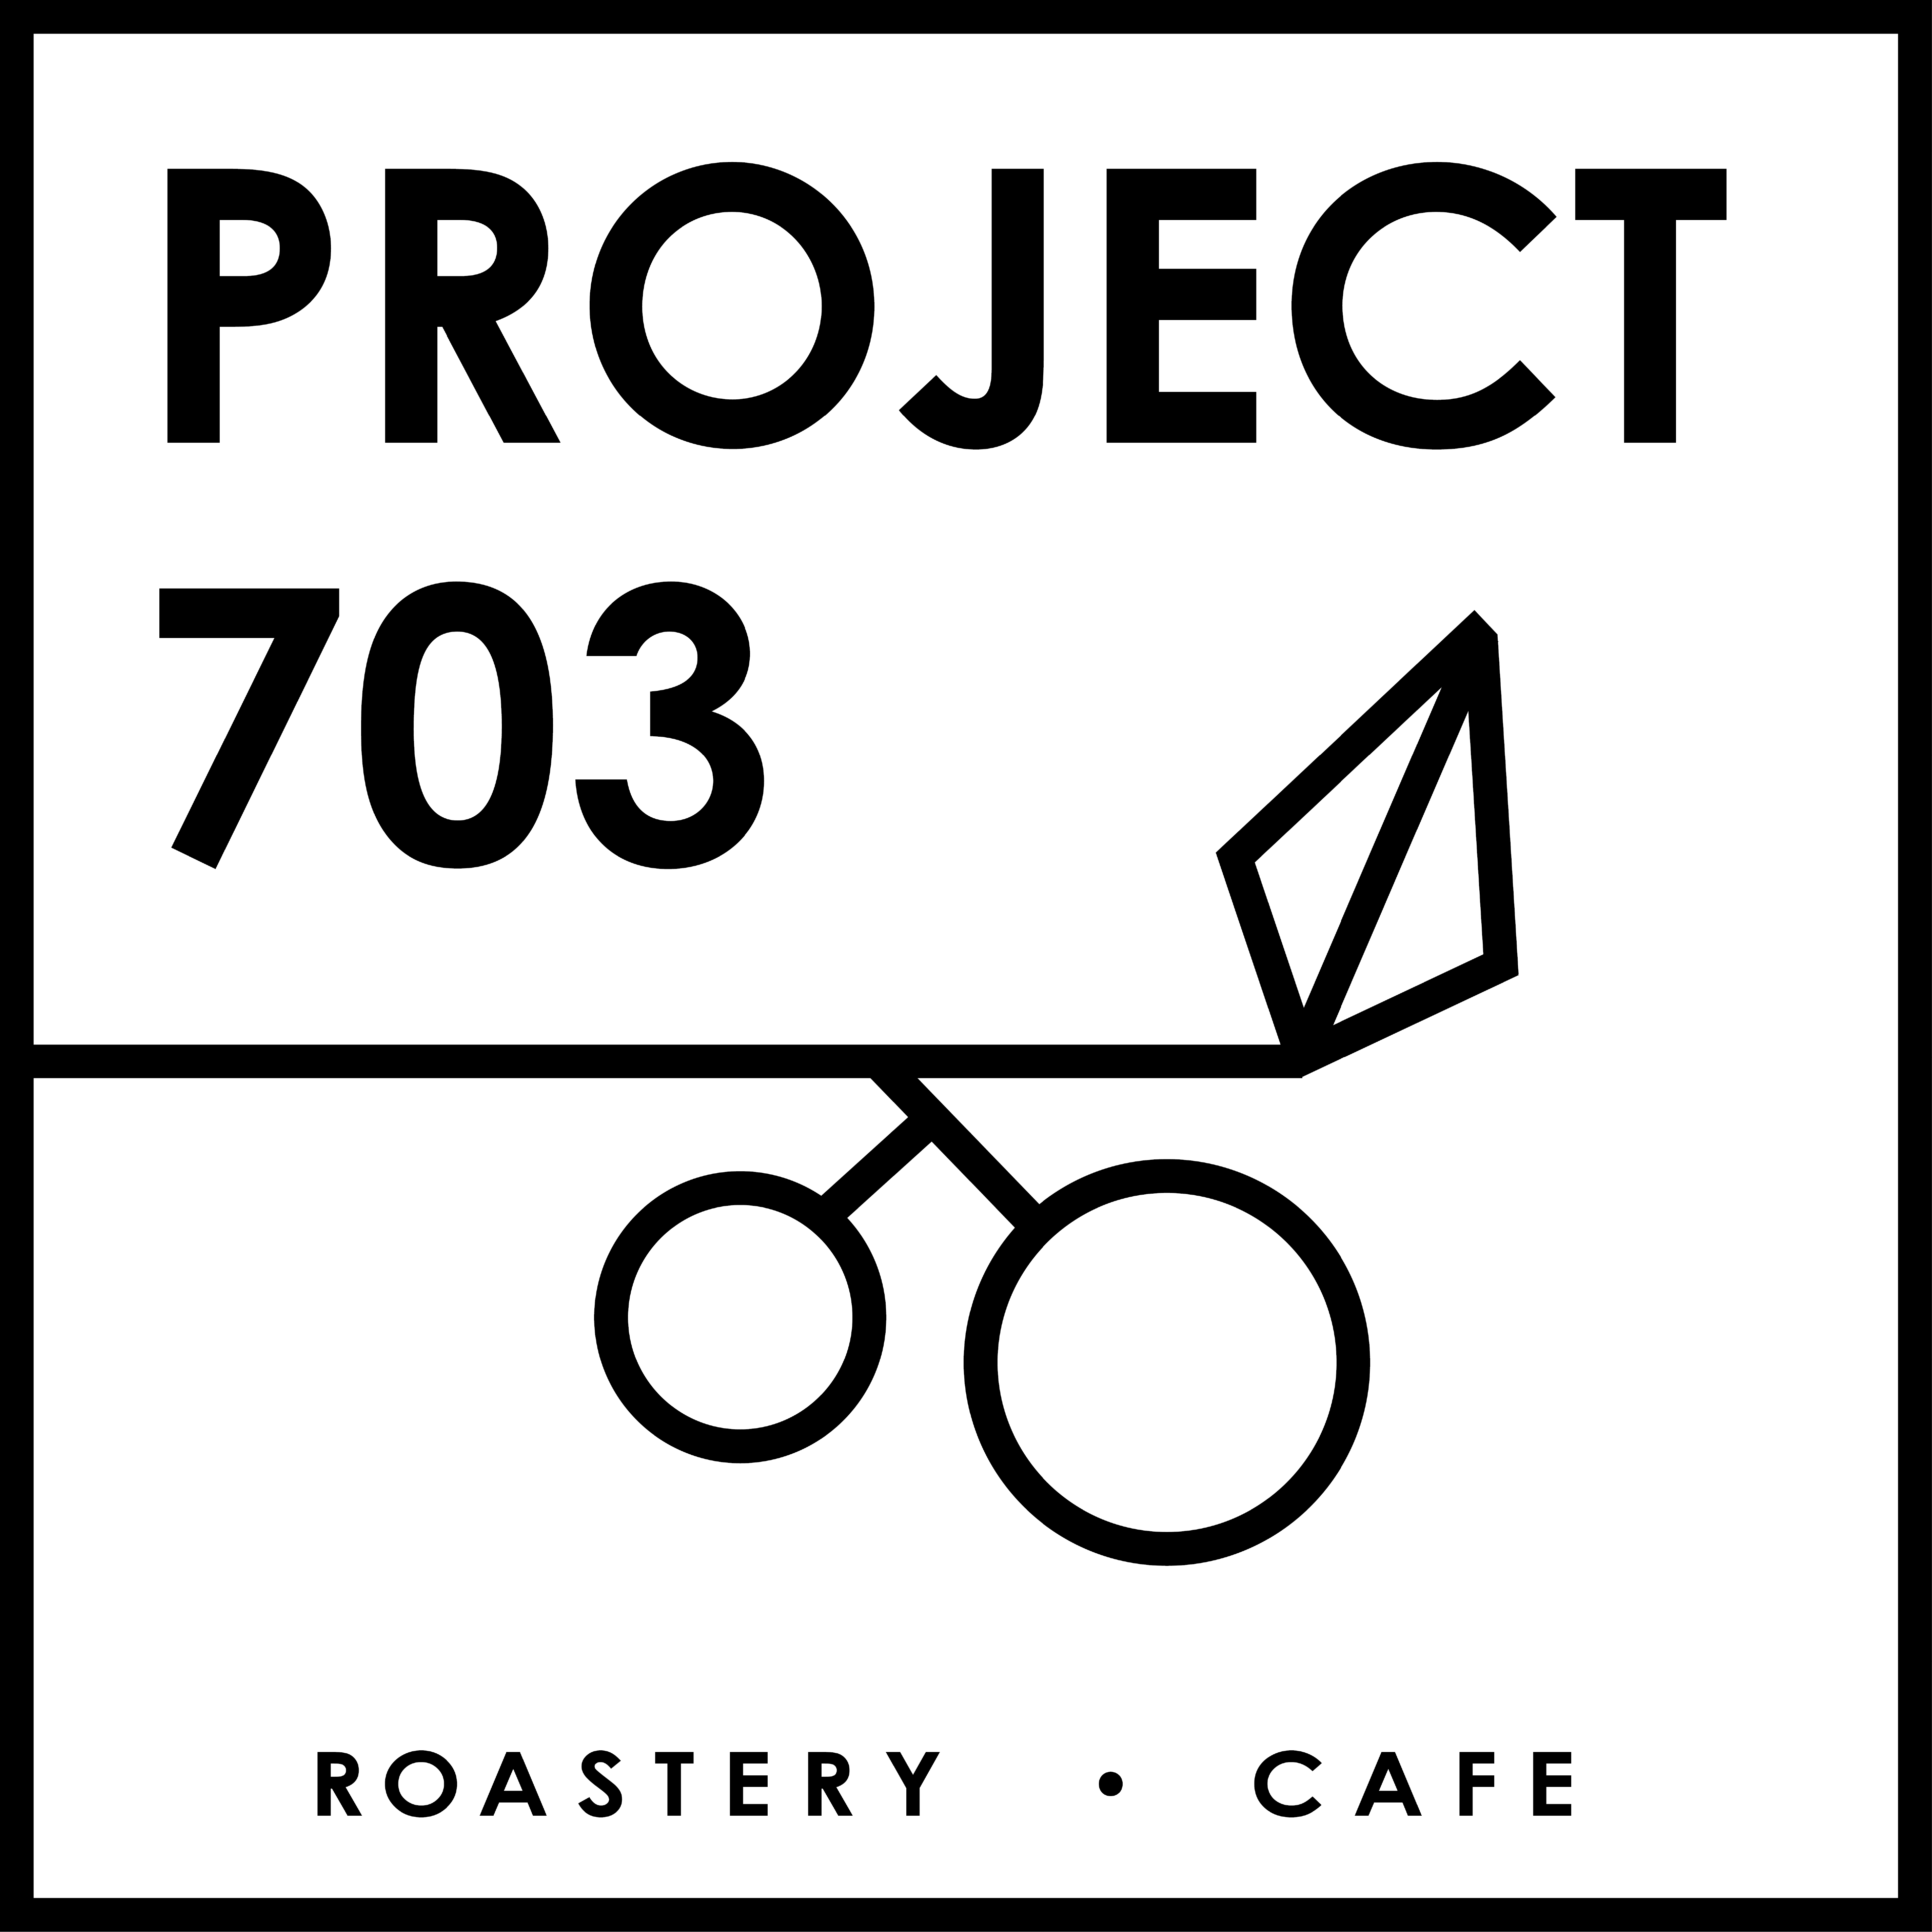 Project 703 Roastery Cafe